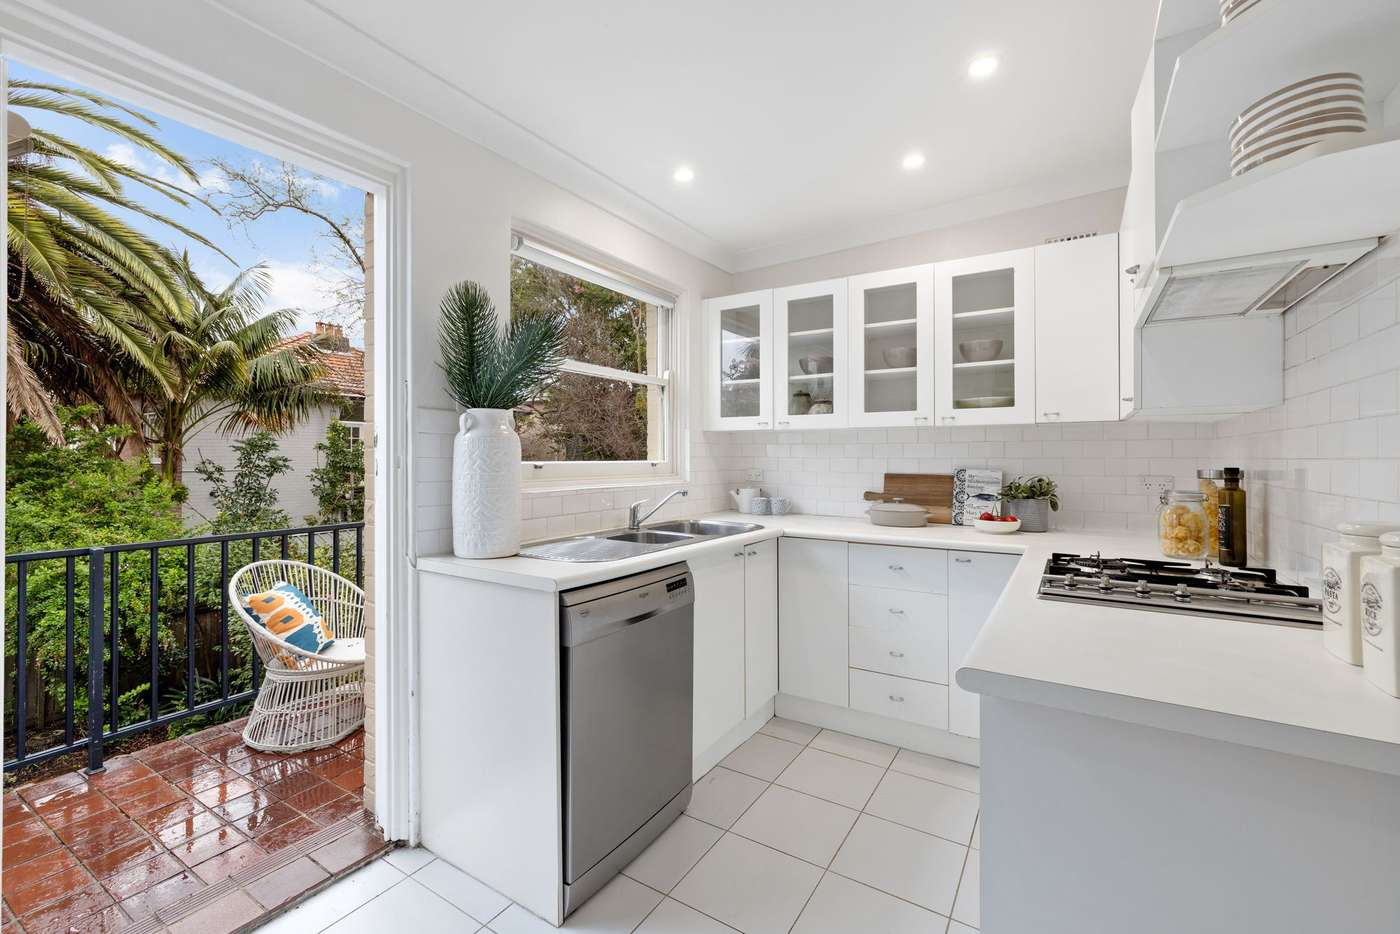 Sixth view of Homely house listing, 112 Shadforth Street, Mosman NSW 2088